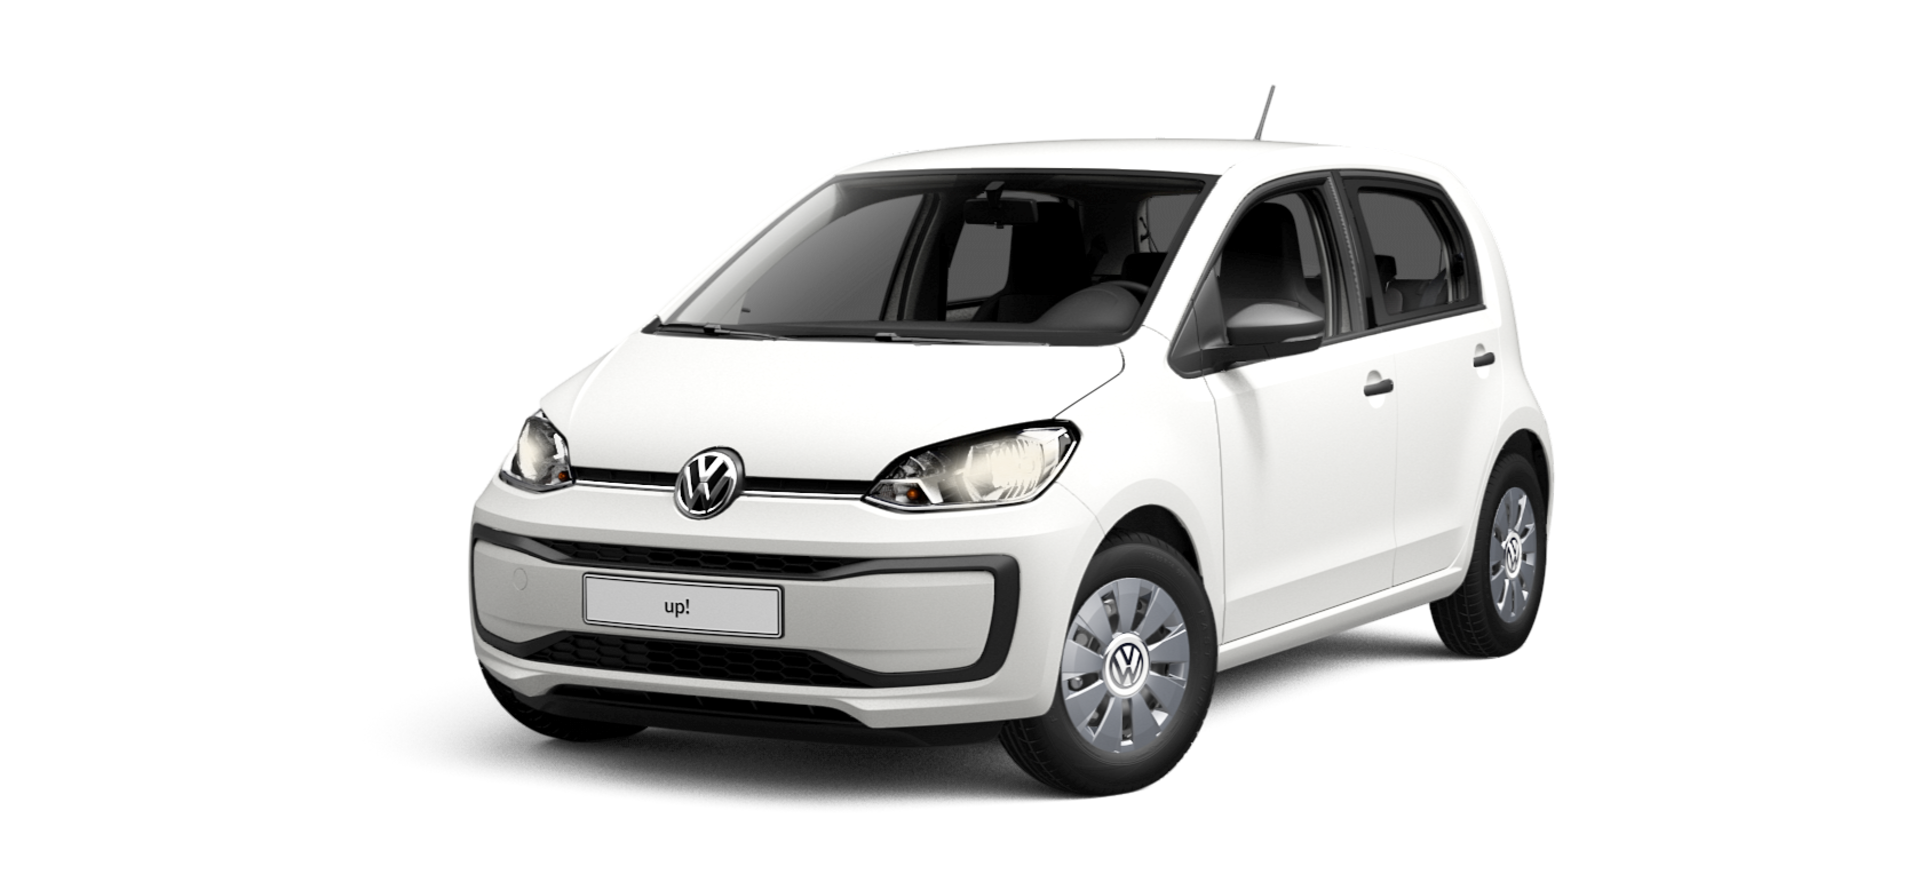 Take up! BMT 4 usi / 60 CP/44 kW / 1.0l / Manuala, 5 trepte / 4-usi : Volkswagen Take up!